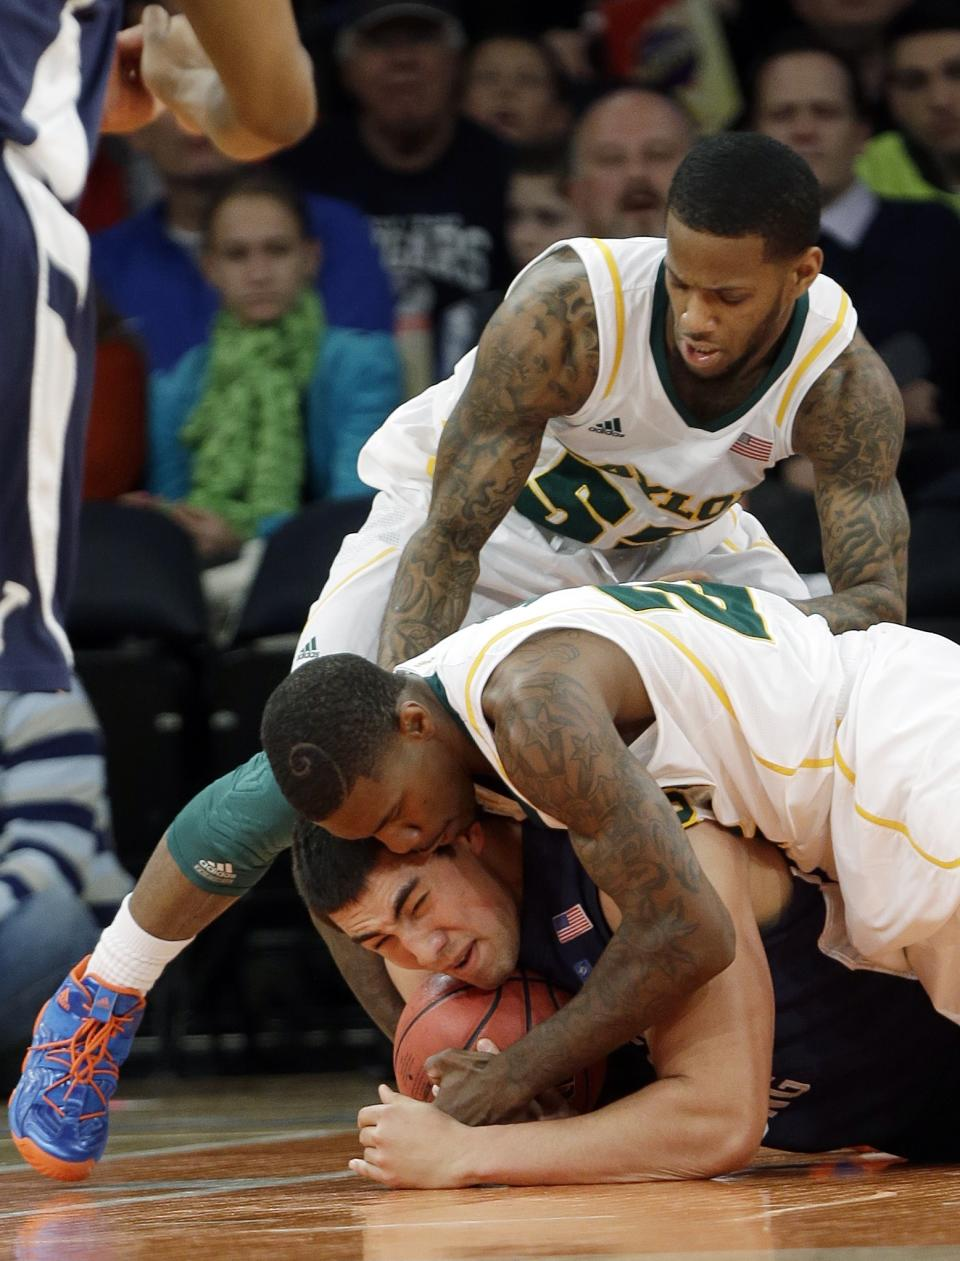 Baylor's Pierre Jackson (55) and A.J. Walton (22) fight for control of the ball with Brigham Young's Bronson Kaufusi, during the first half of an NIT semifinal basketball game Tuesday, April 2, 2013, in New York. (AP Photo/Frank Franklin)